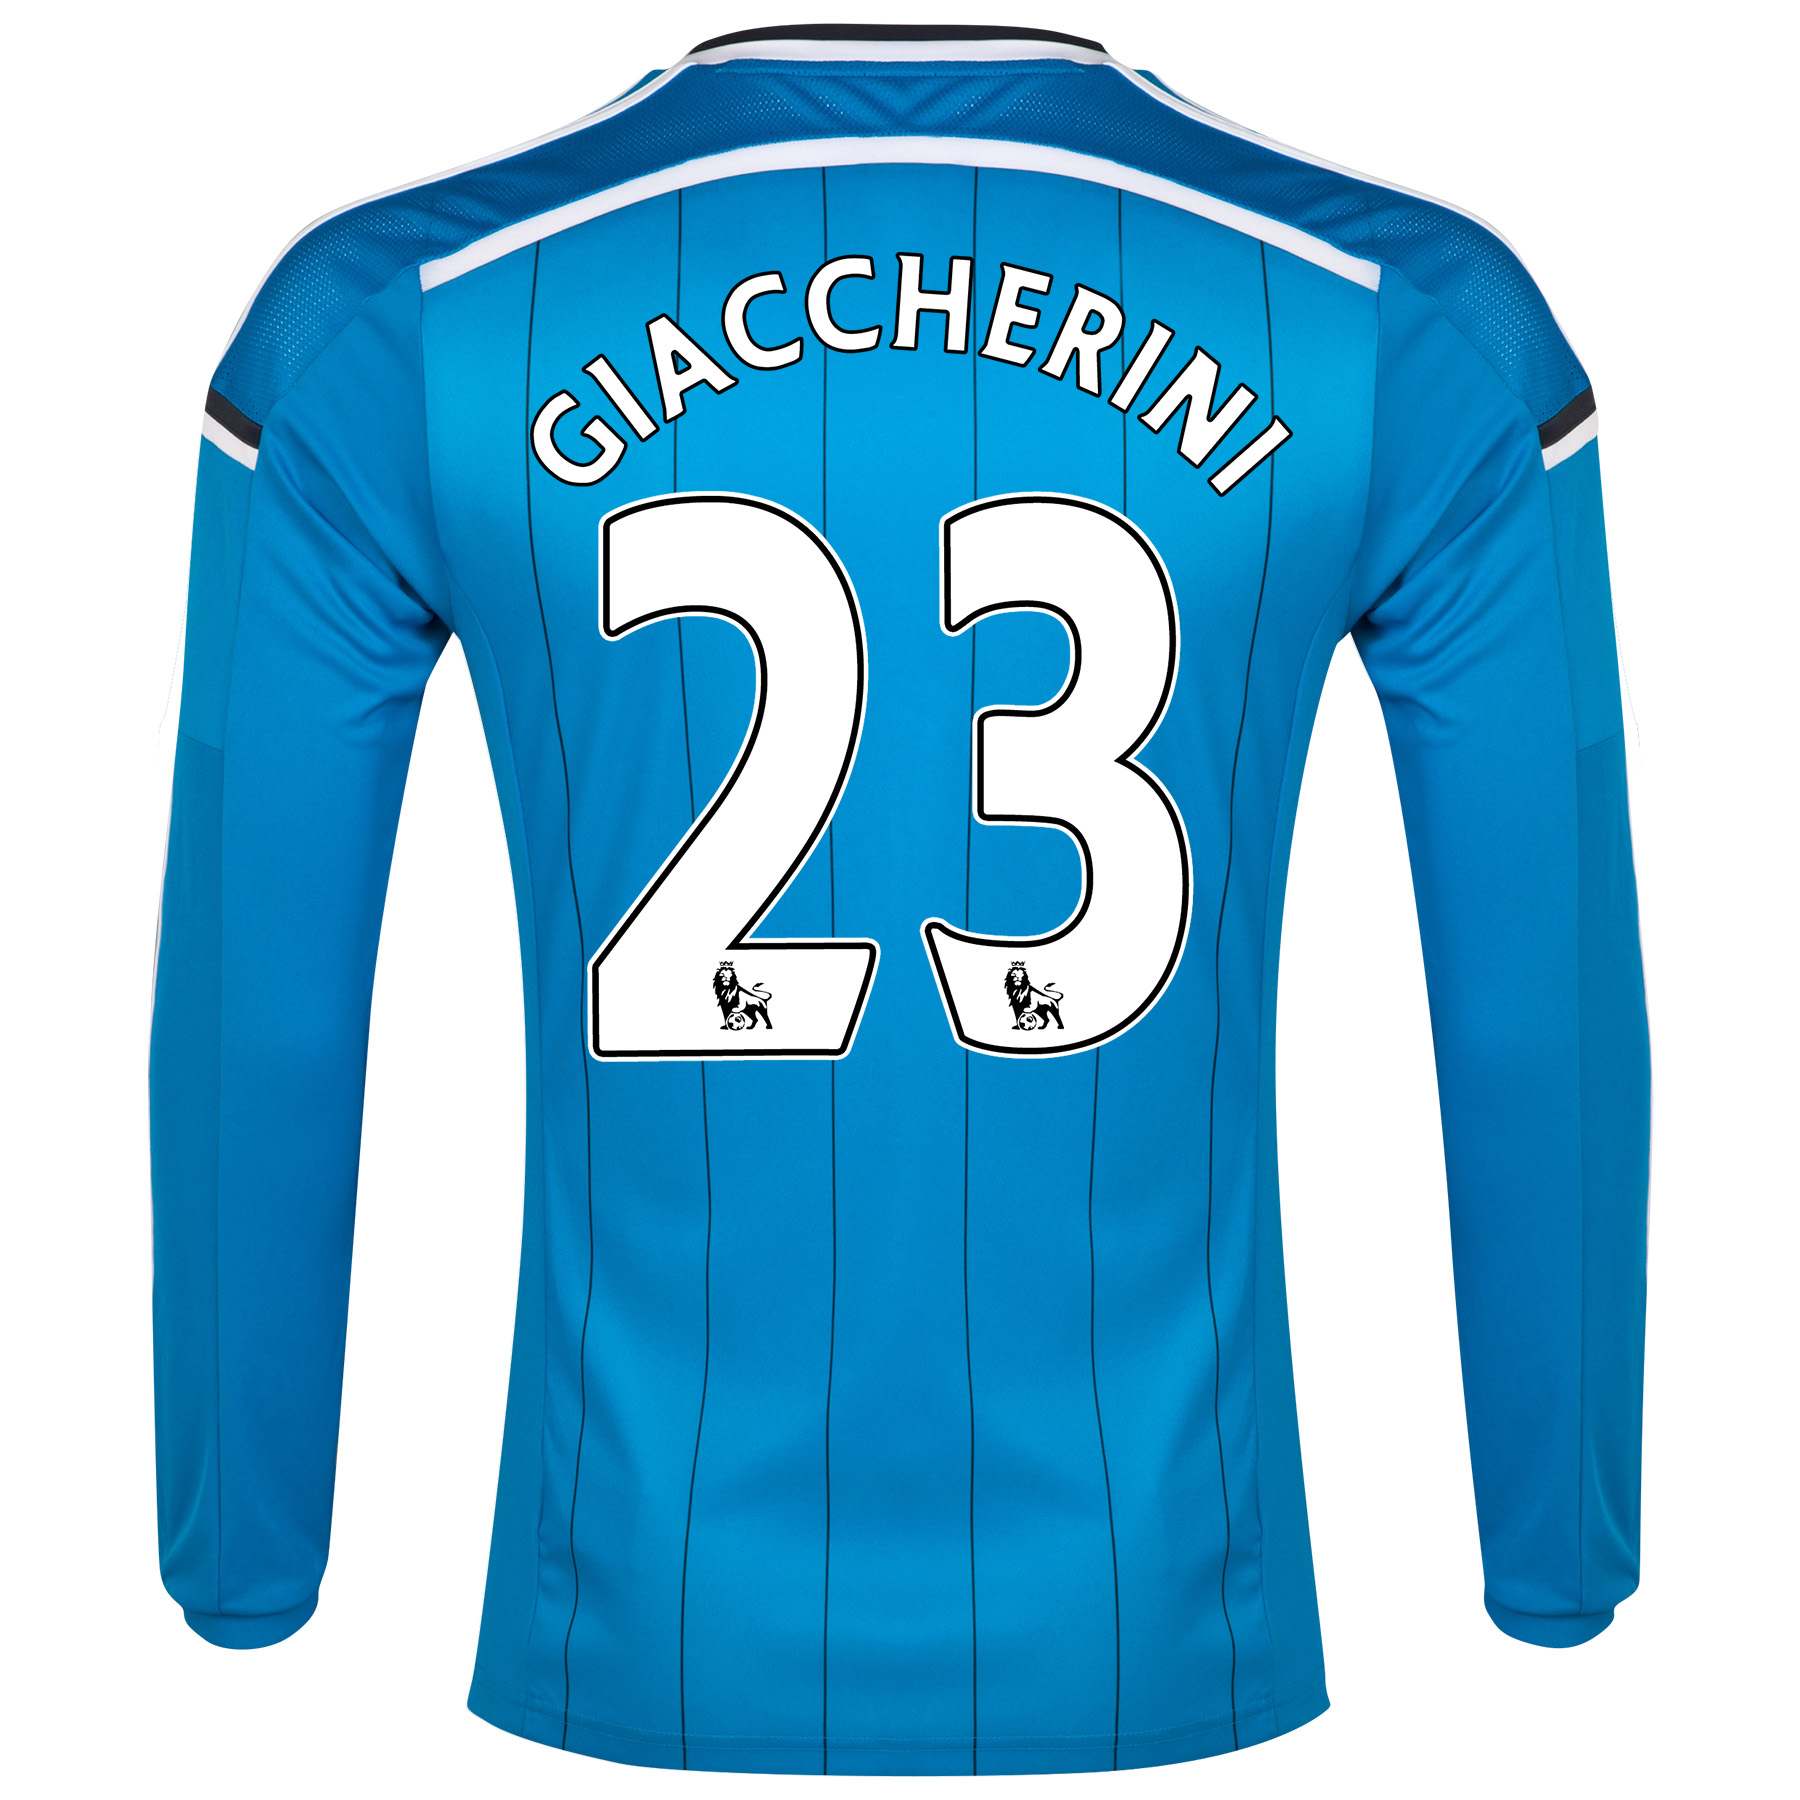 Sunderland Away Shirt 2014/15 - Long Sleeved Lt Blue with Giaccherini 23 printing